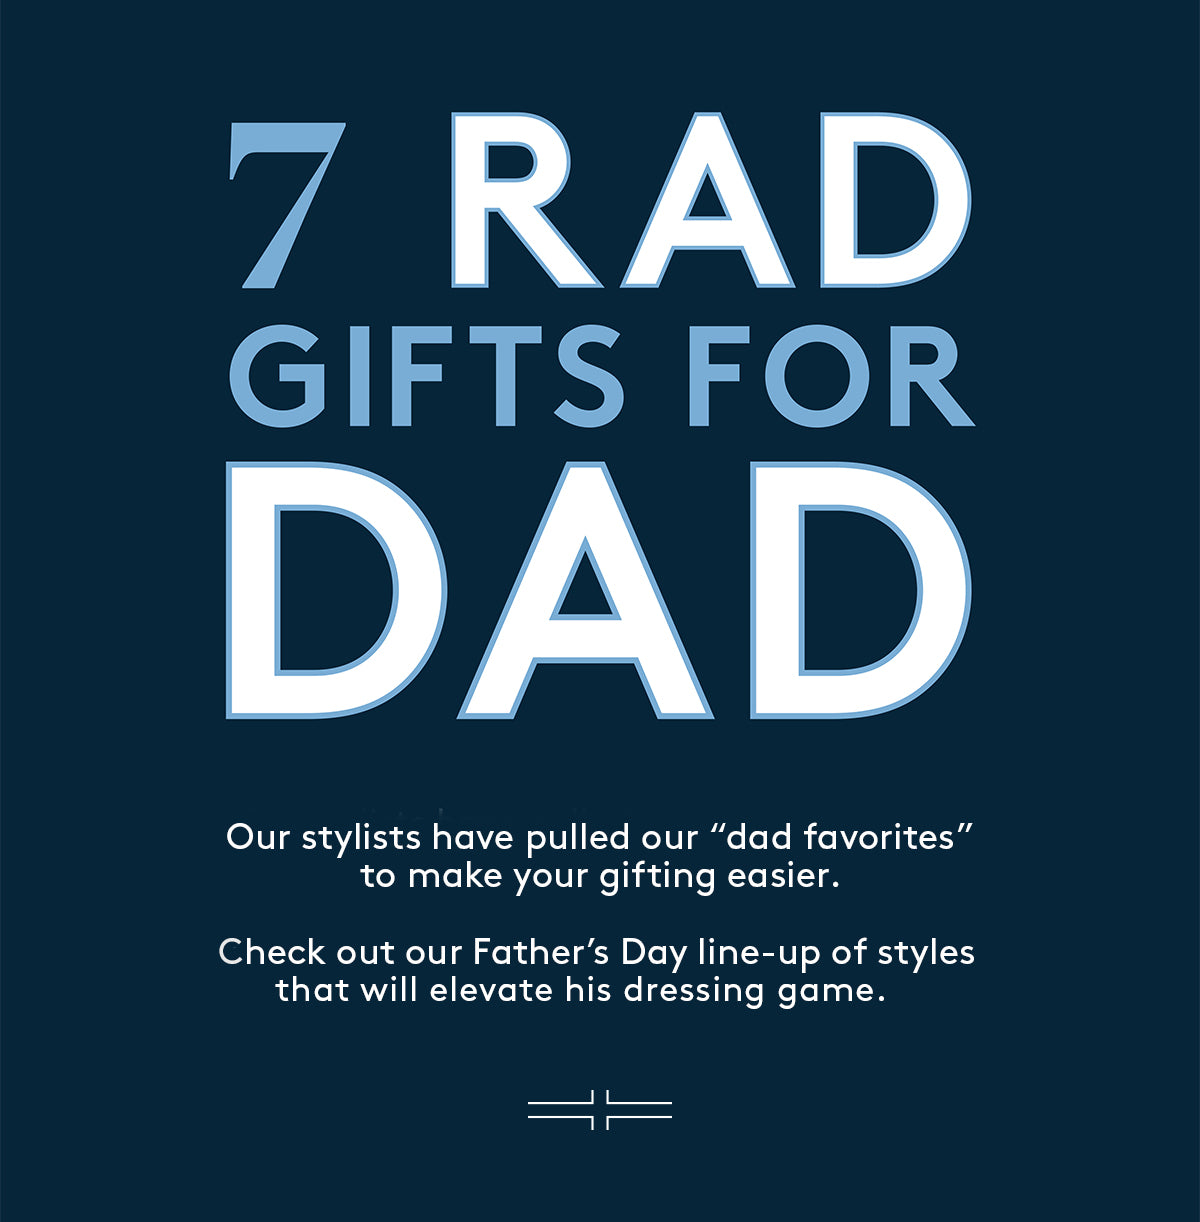 """7 RAD GIFTS FOR DAD: Our stylists have pulled our """"dad favorites"""" to make your gifting easier.  Check out our Father's Day line-up of styles that will elevate his dressing game."""